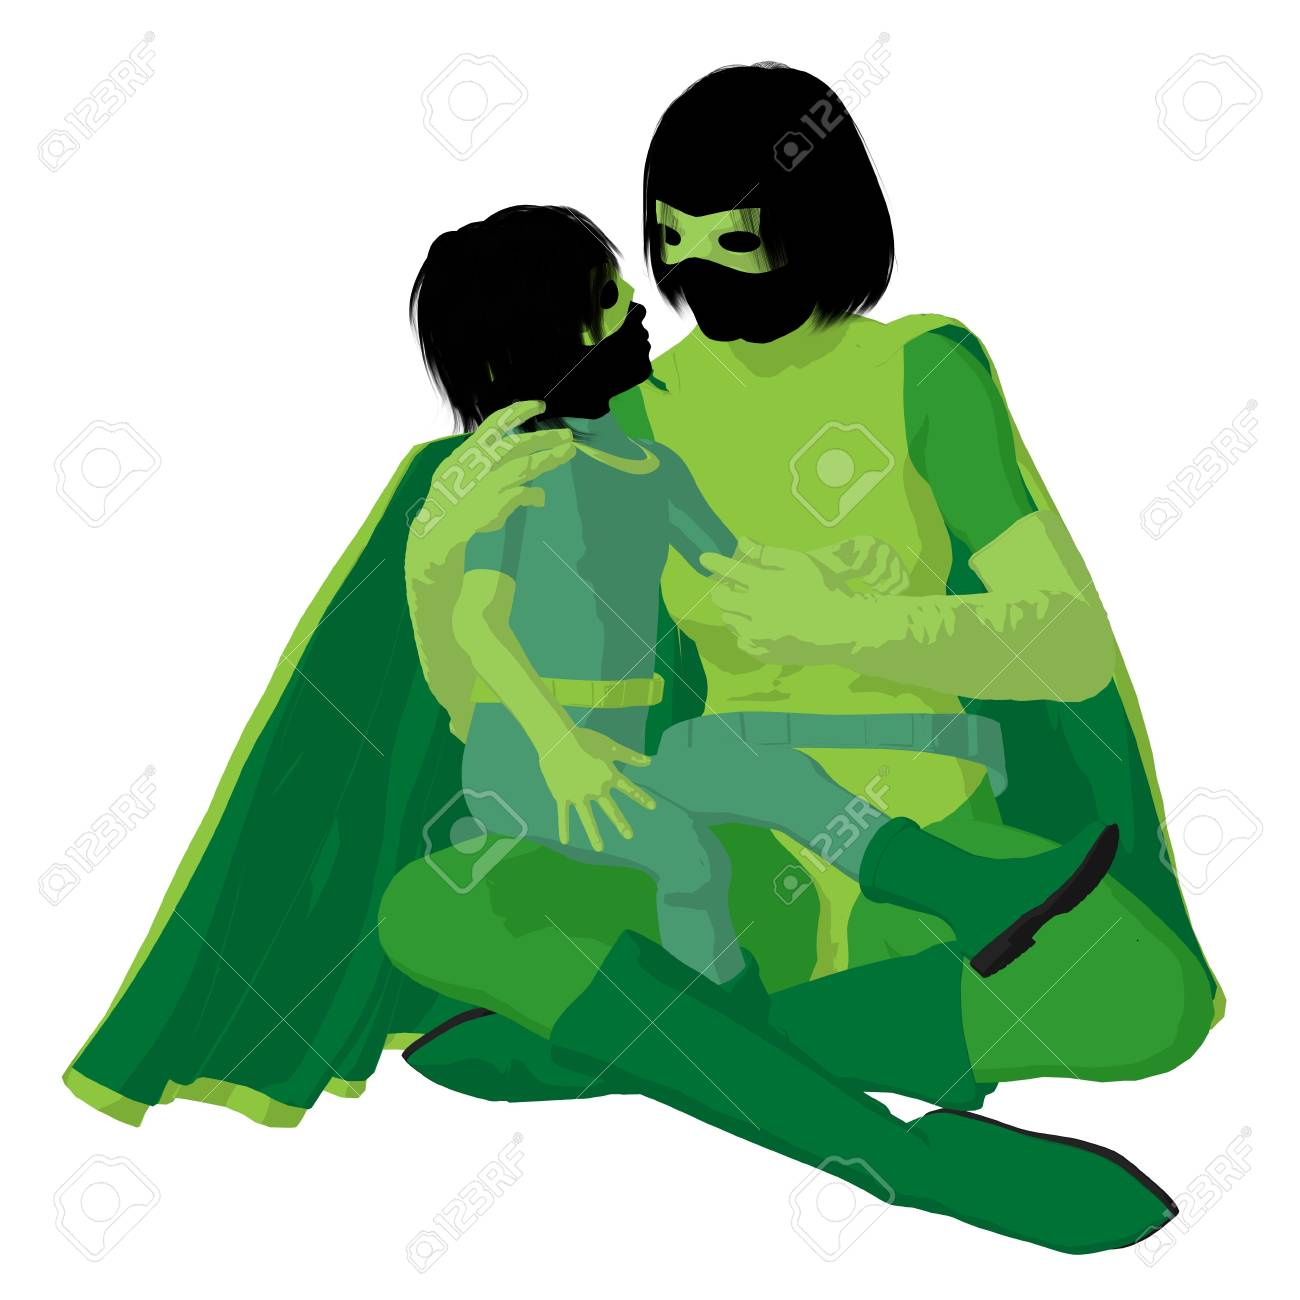 hero mom with child silhouette on a white background Stock Photo - 7942929